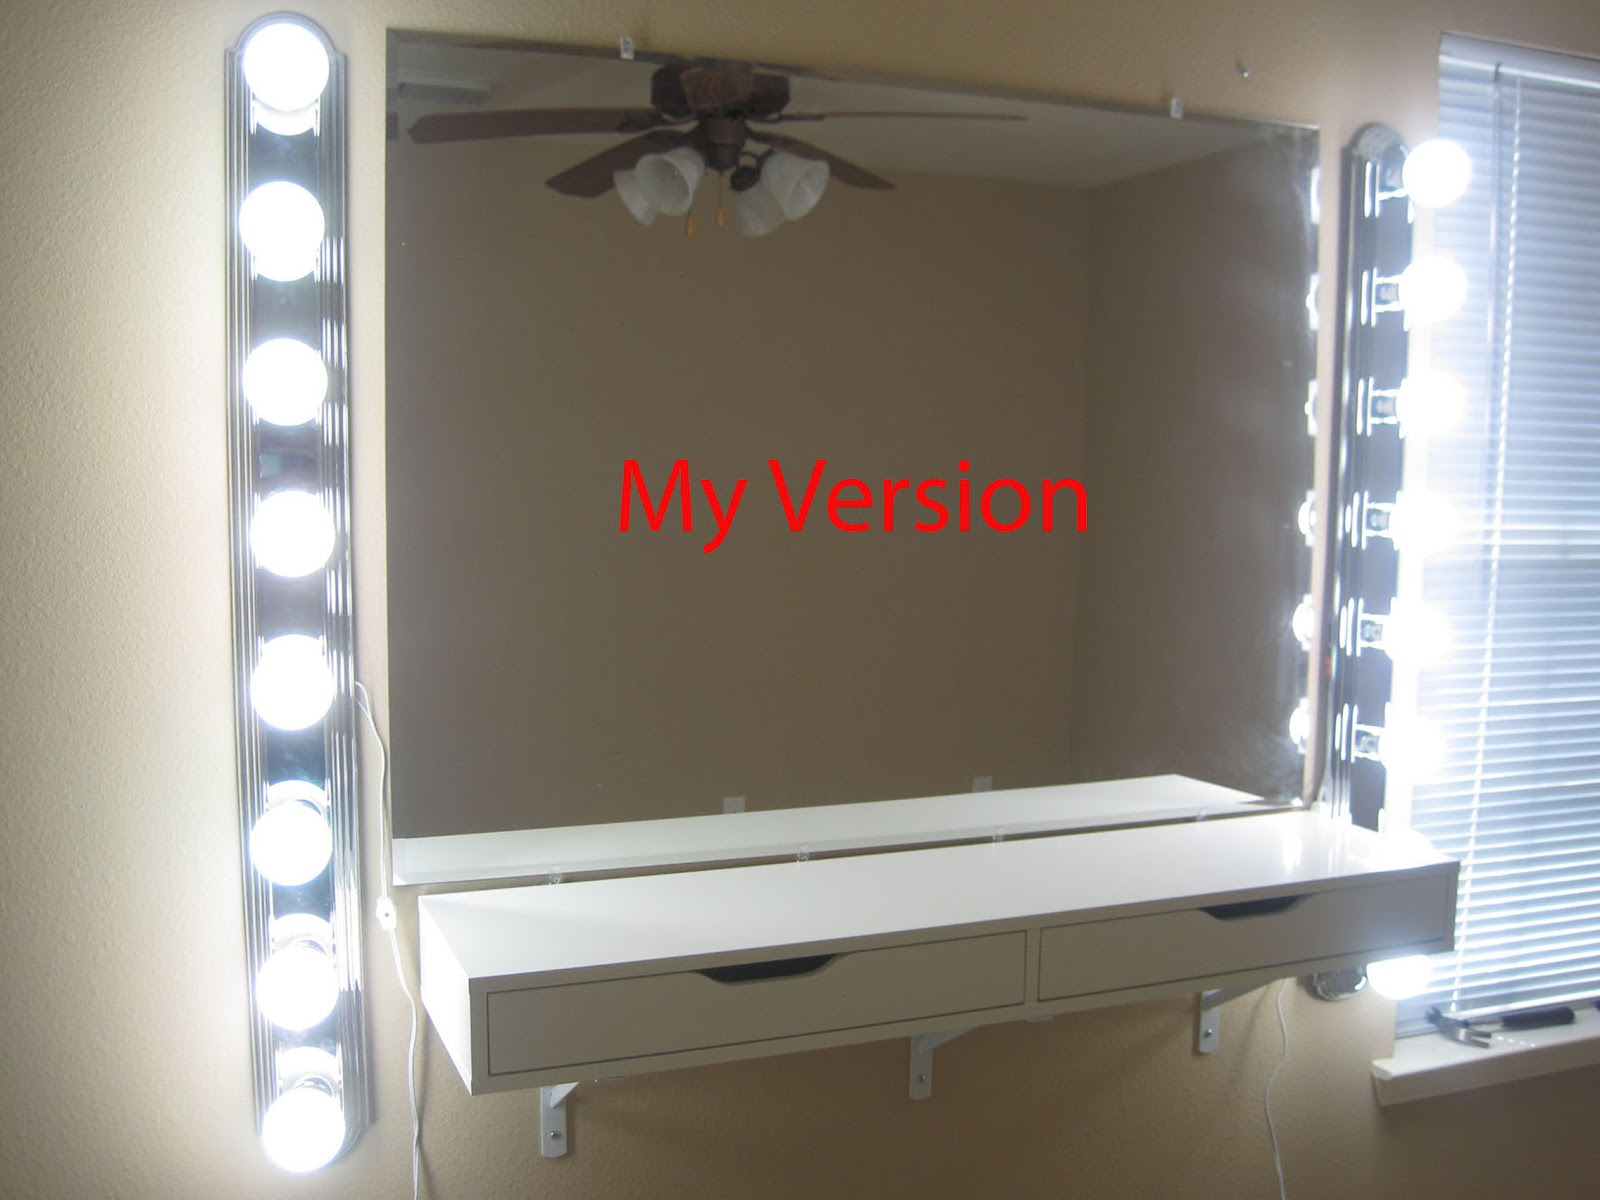 Chabz diy vanity mirror and lights diy vanity mirror and lights aloadofball Choice Image